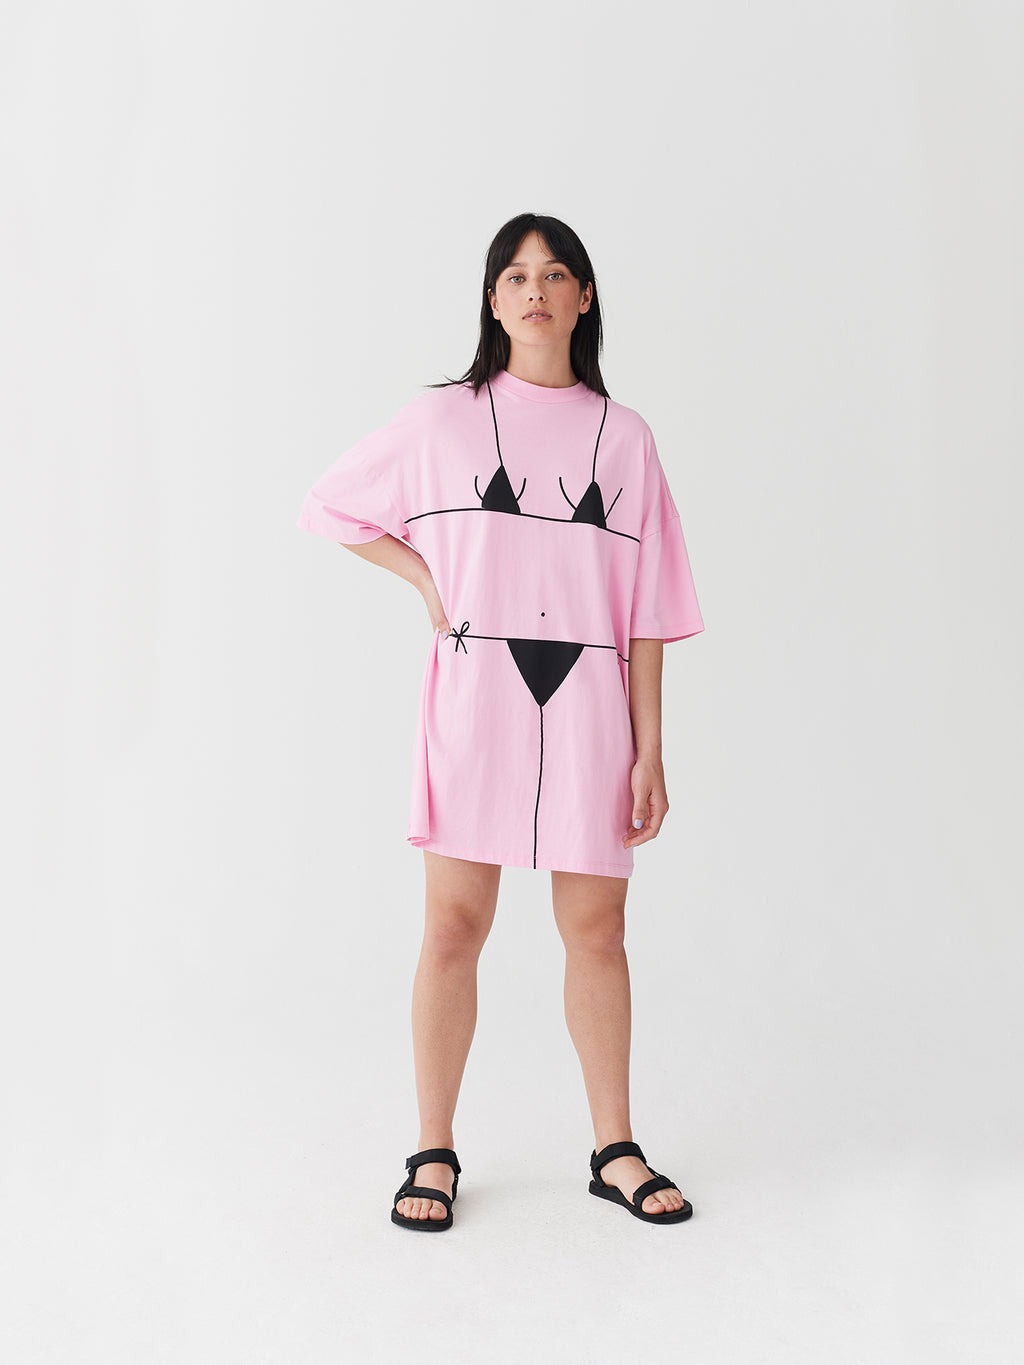 Lazy Oaf Beach Bum Pink T-Shirt Dress